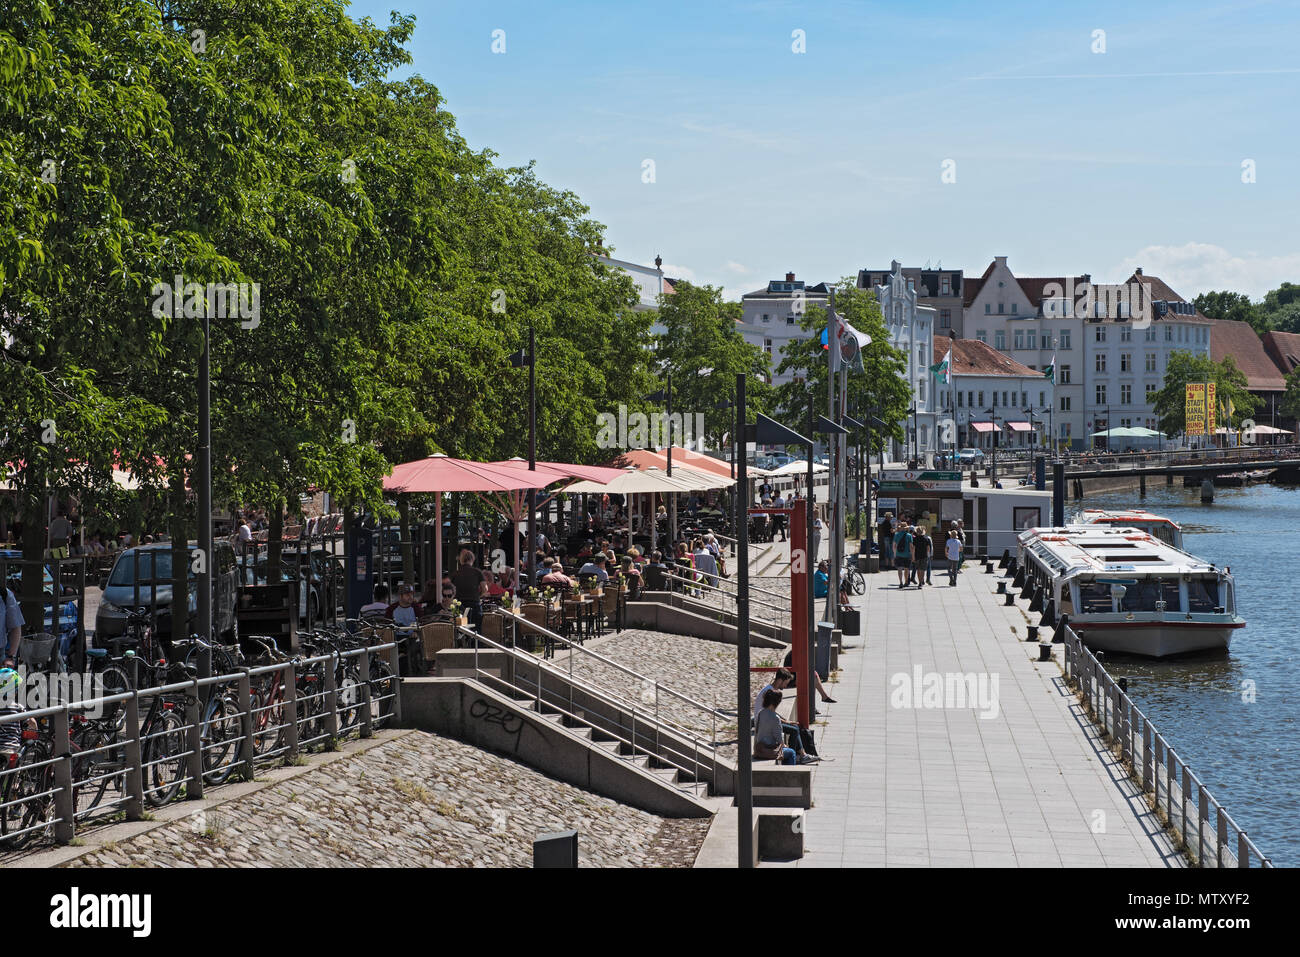 cafes with tourists on the bank of the trave river in the old town of lubeck, germany - Stock Image